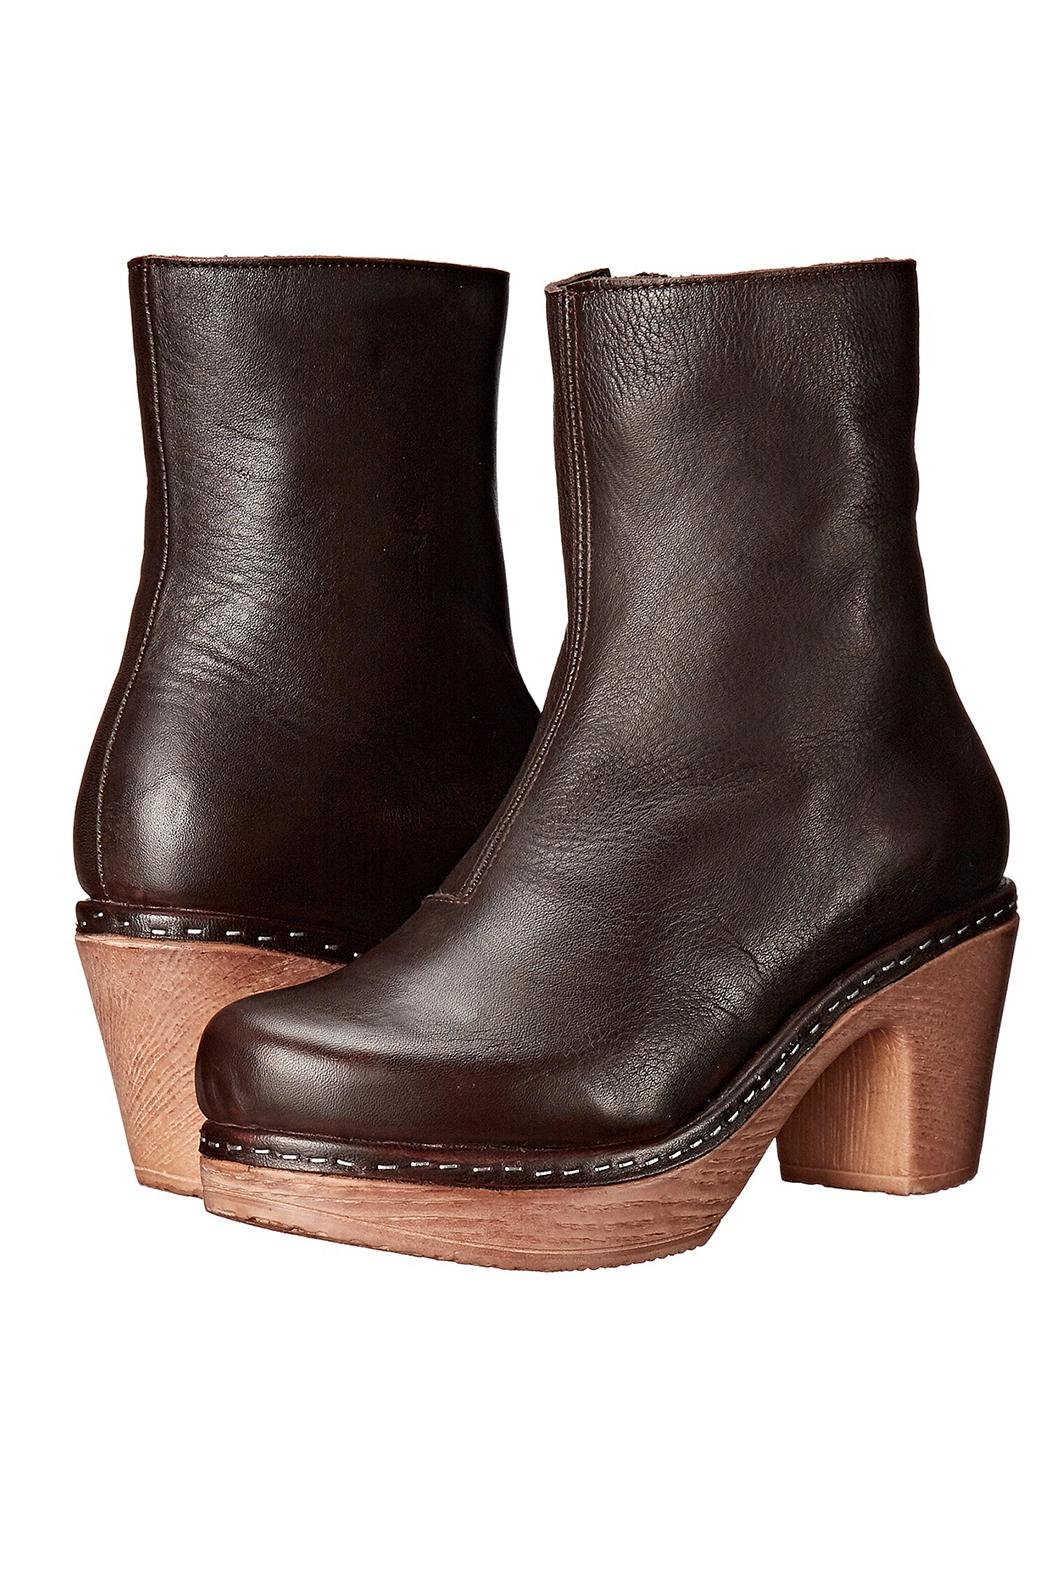 Calou Stockholm Calou Molly Boot from Vermont by green envy — Shoptiques 9a41f7c37d